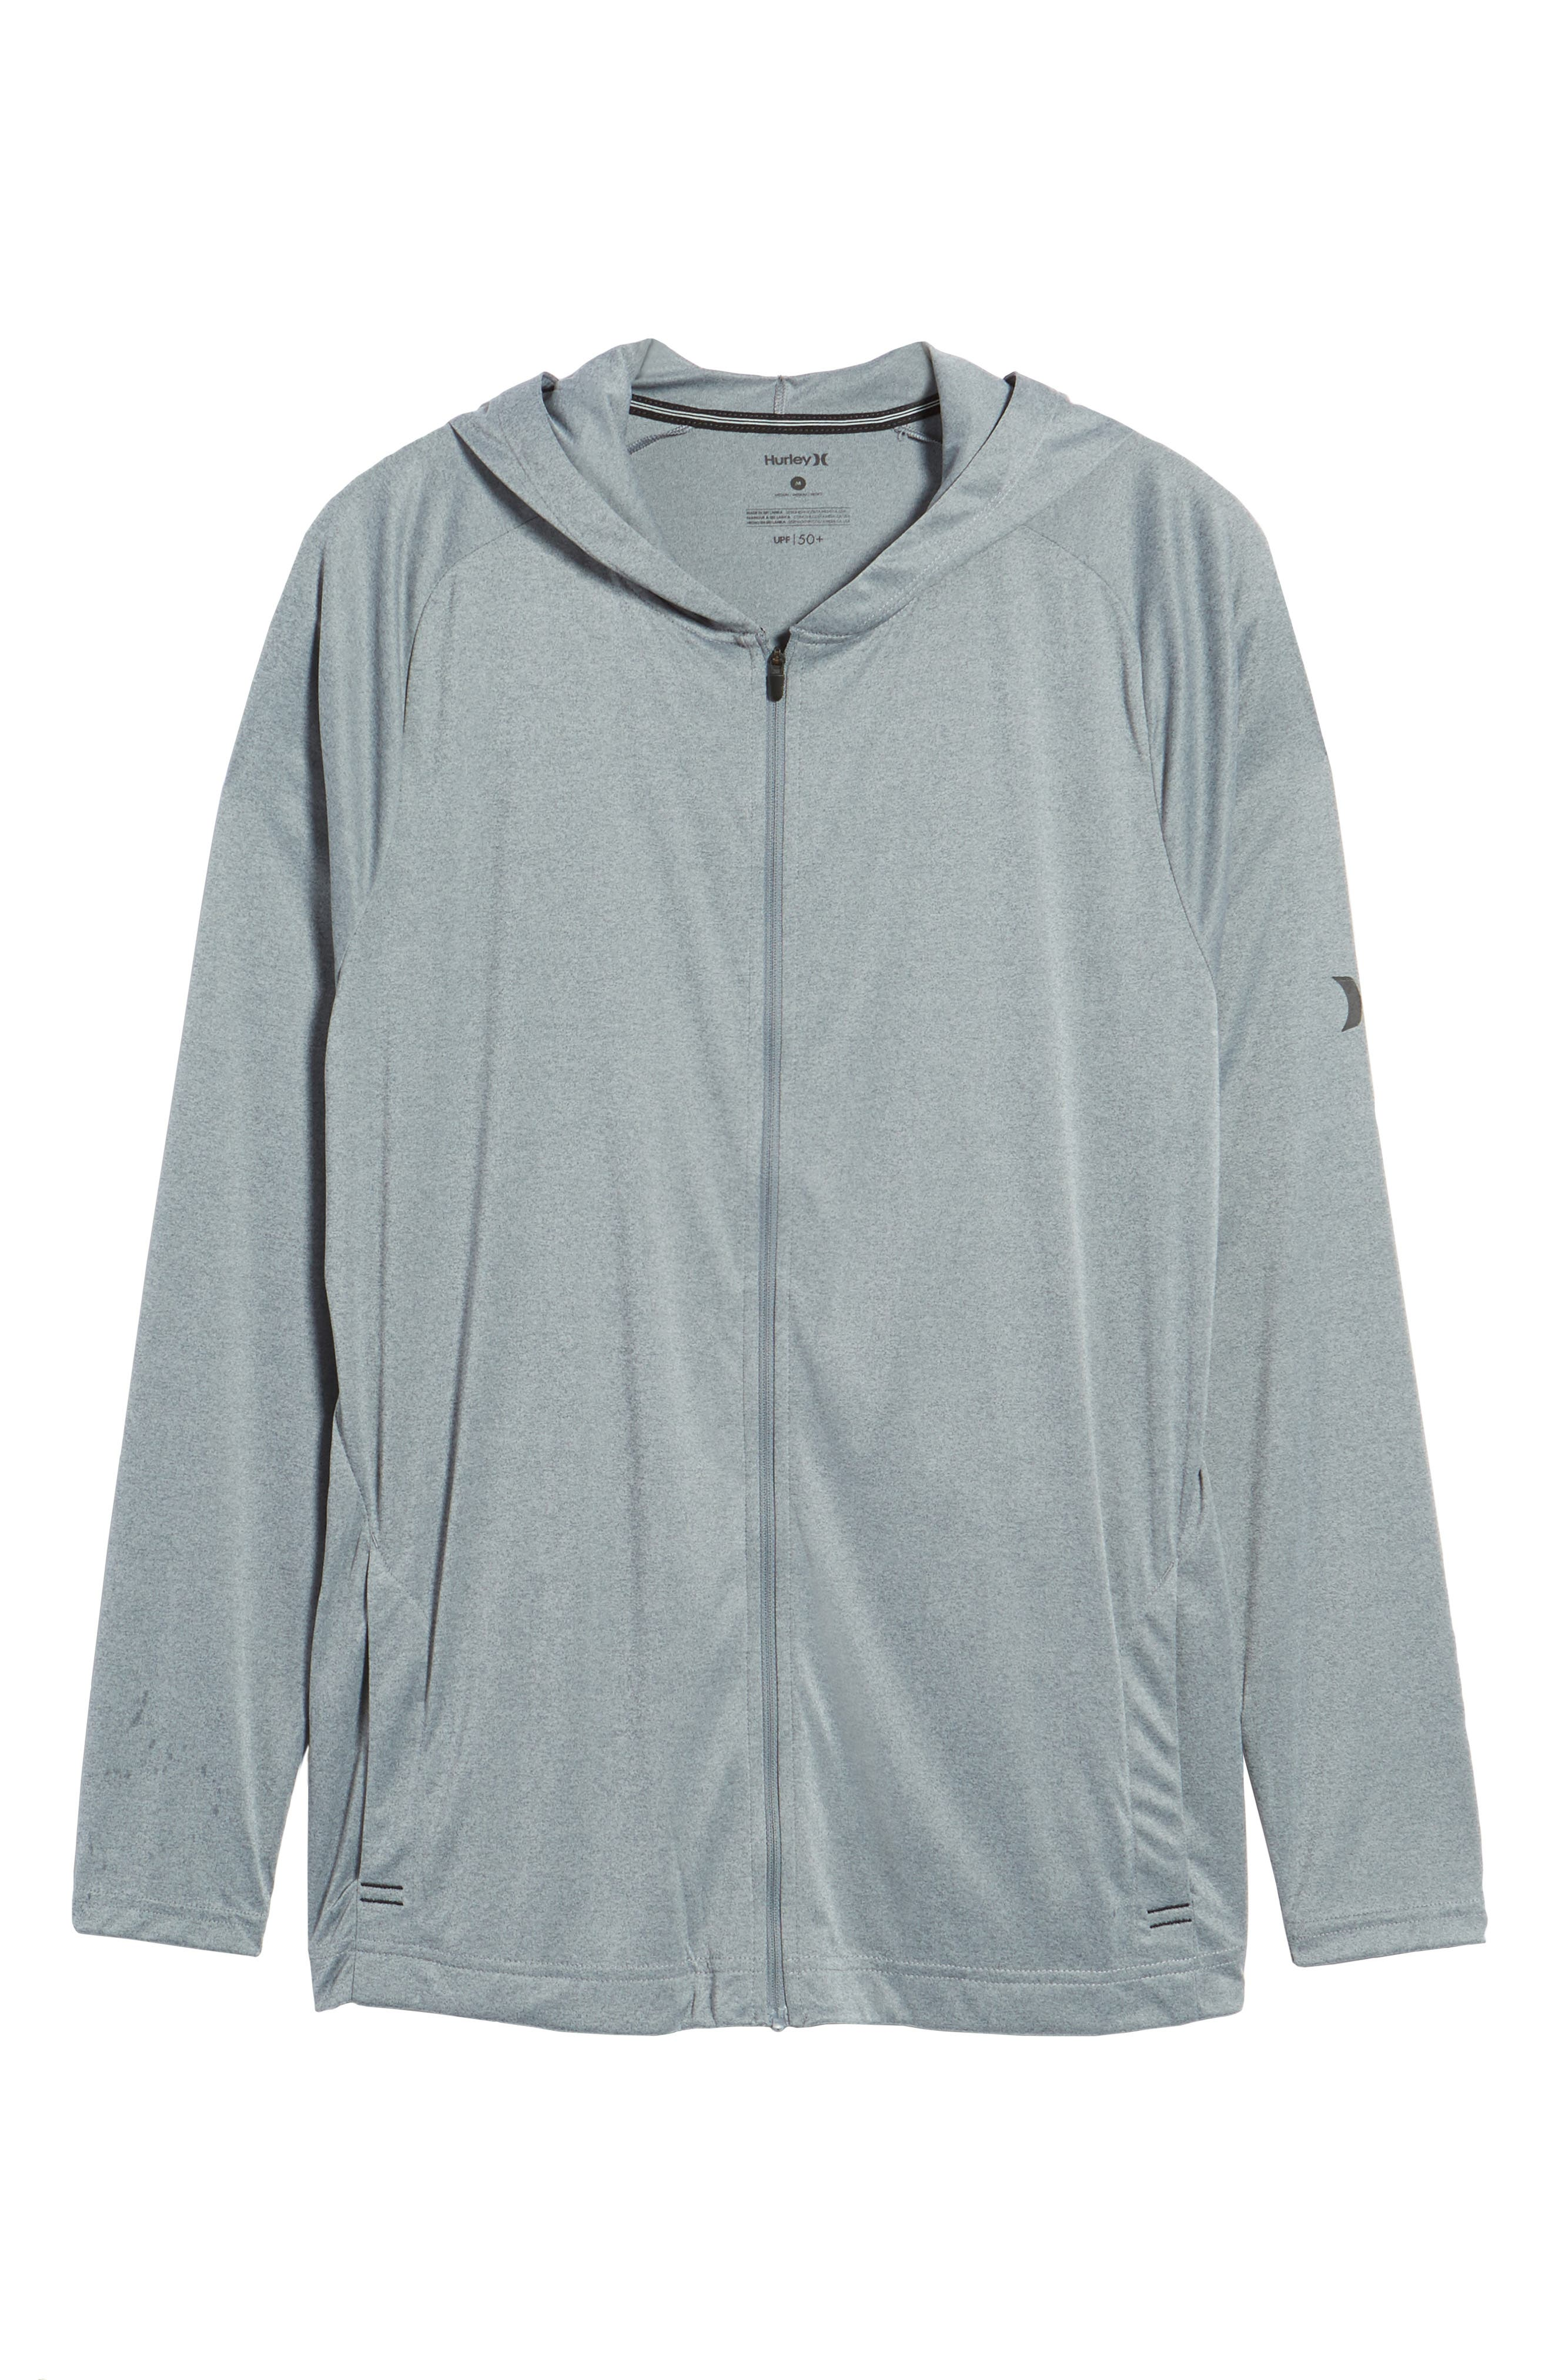 Icon Quick Dry Zip Hoodie,                             Alternate thumbnail 6, color,                             Cool Grey Htr